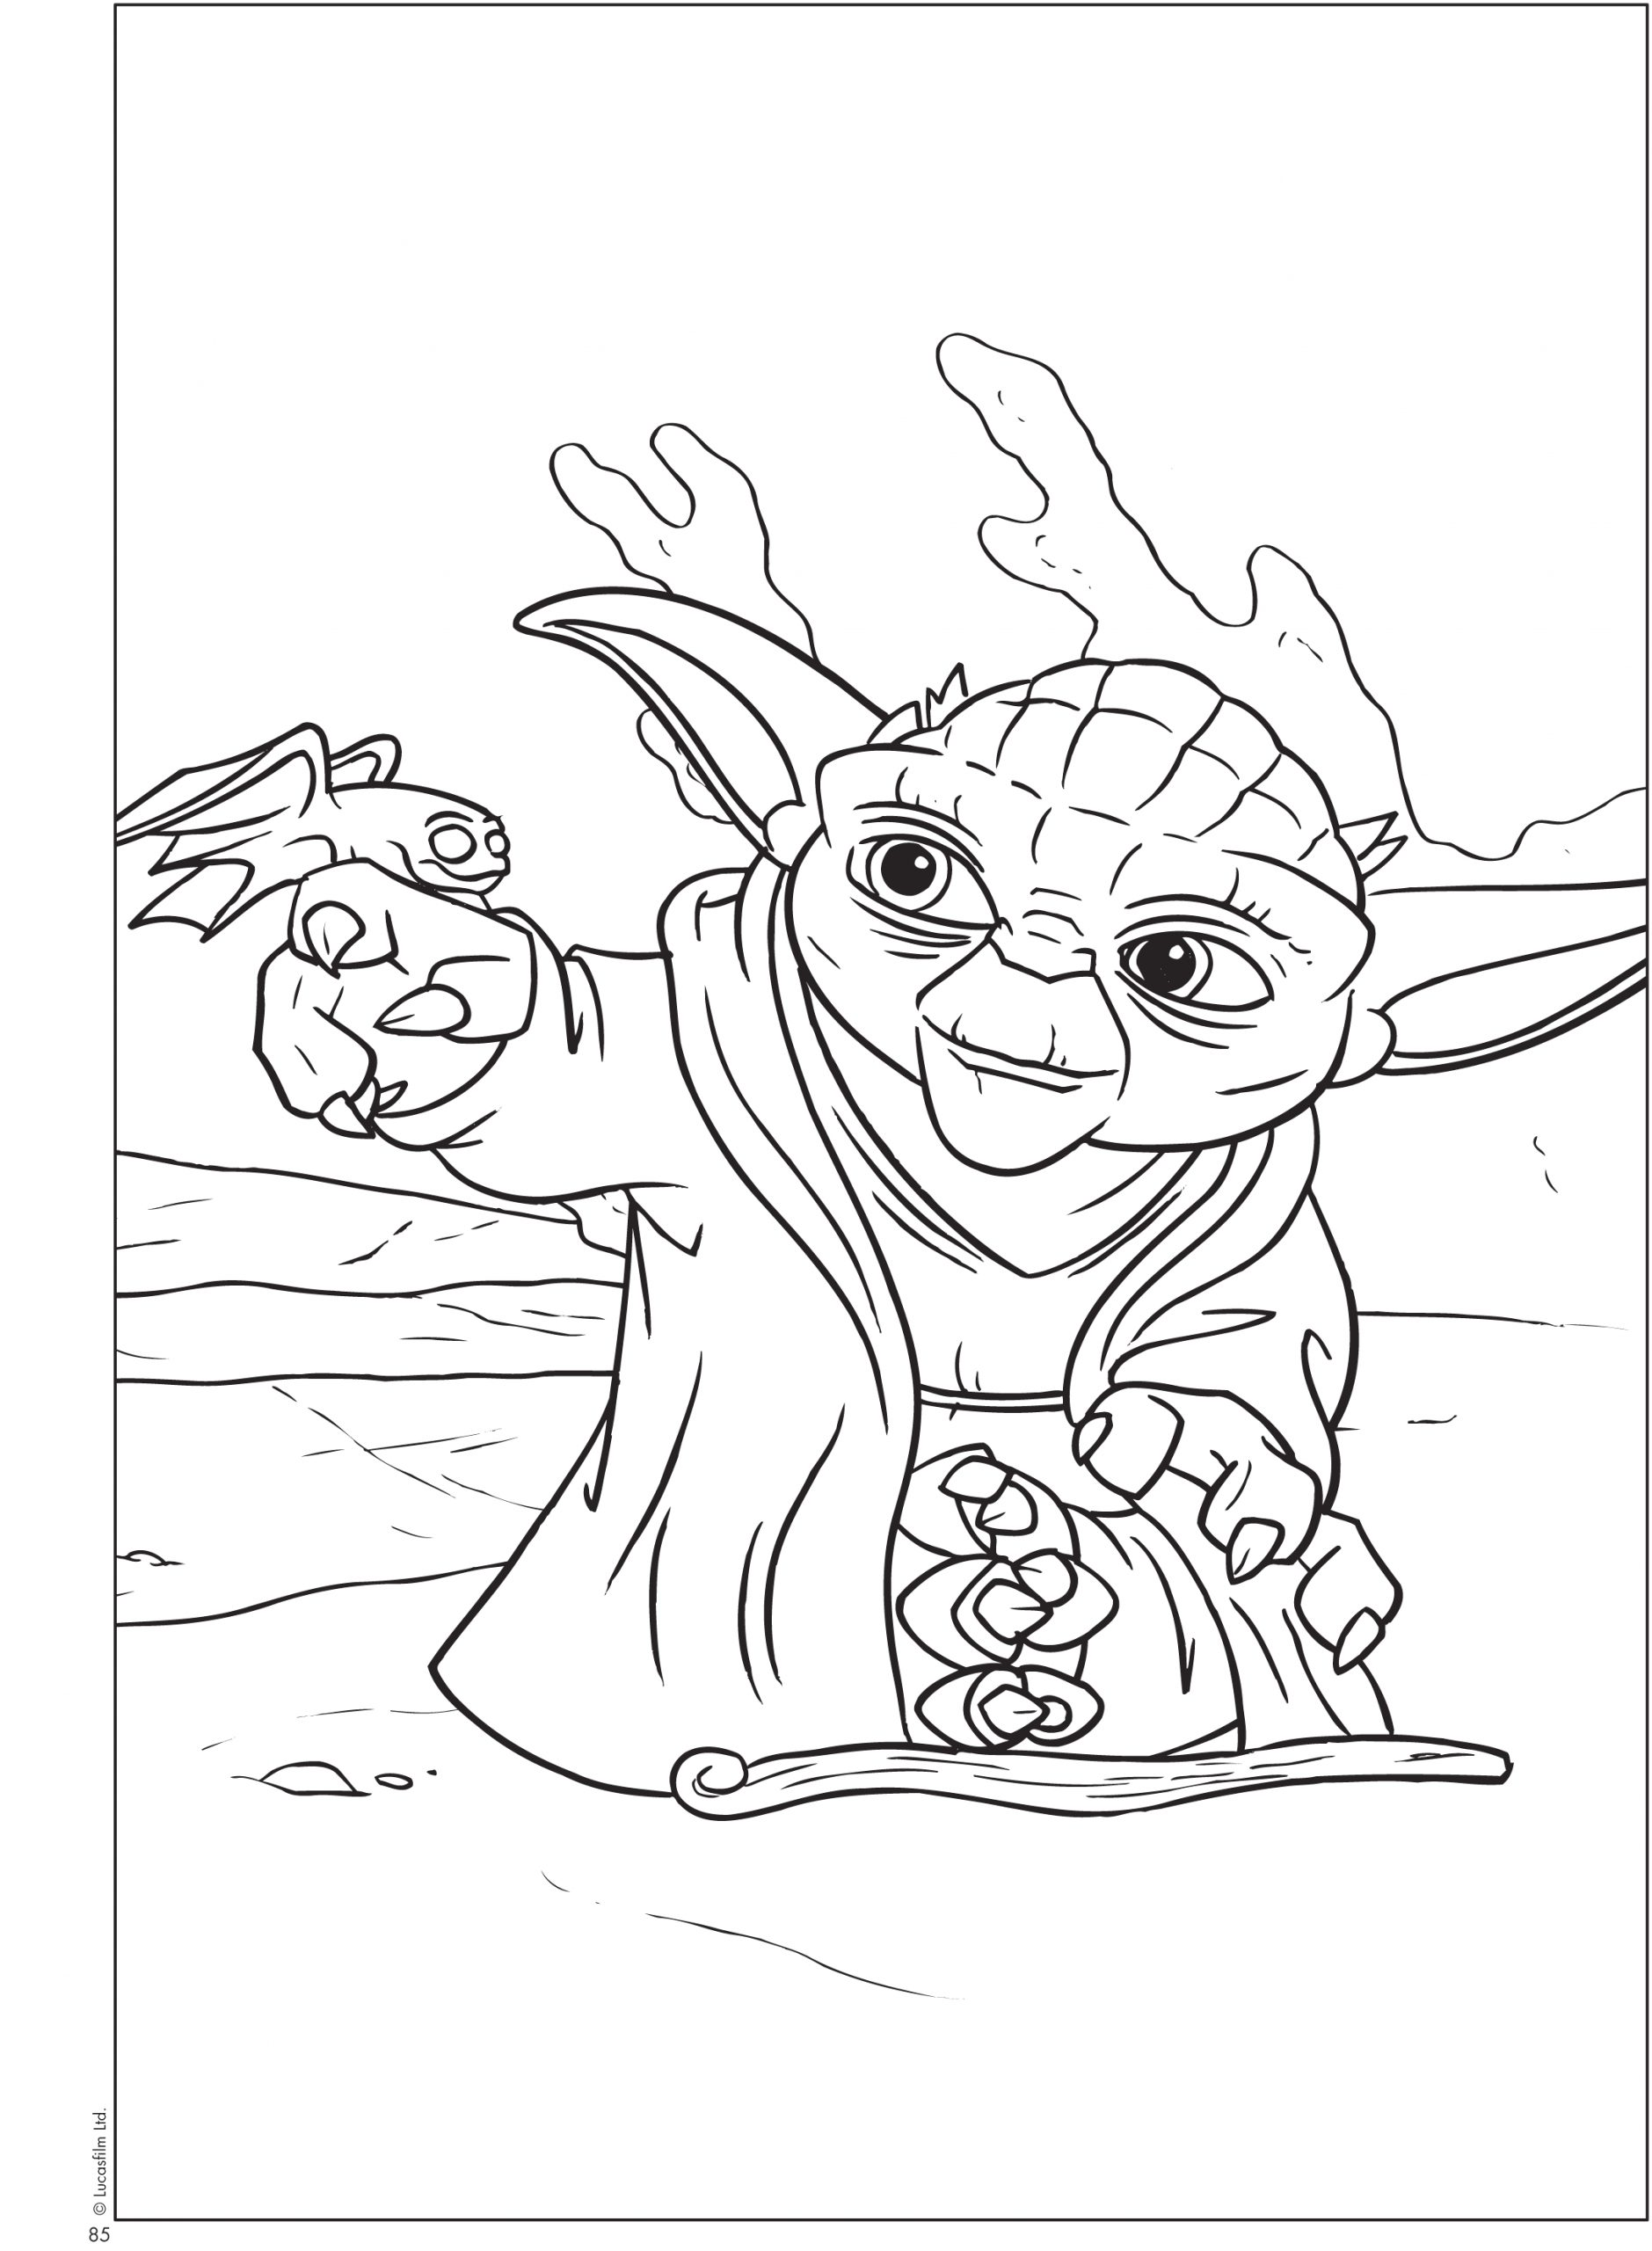 Star Wars Coloring Pages to Print for Free Free Printable Star Wars Coloring Sheets Queen Of Free